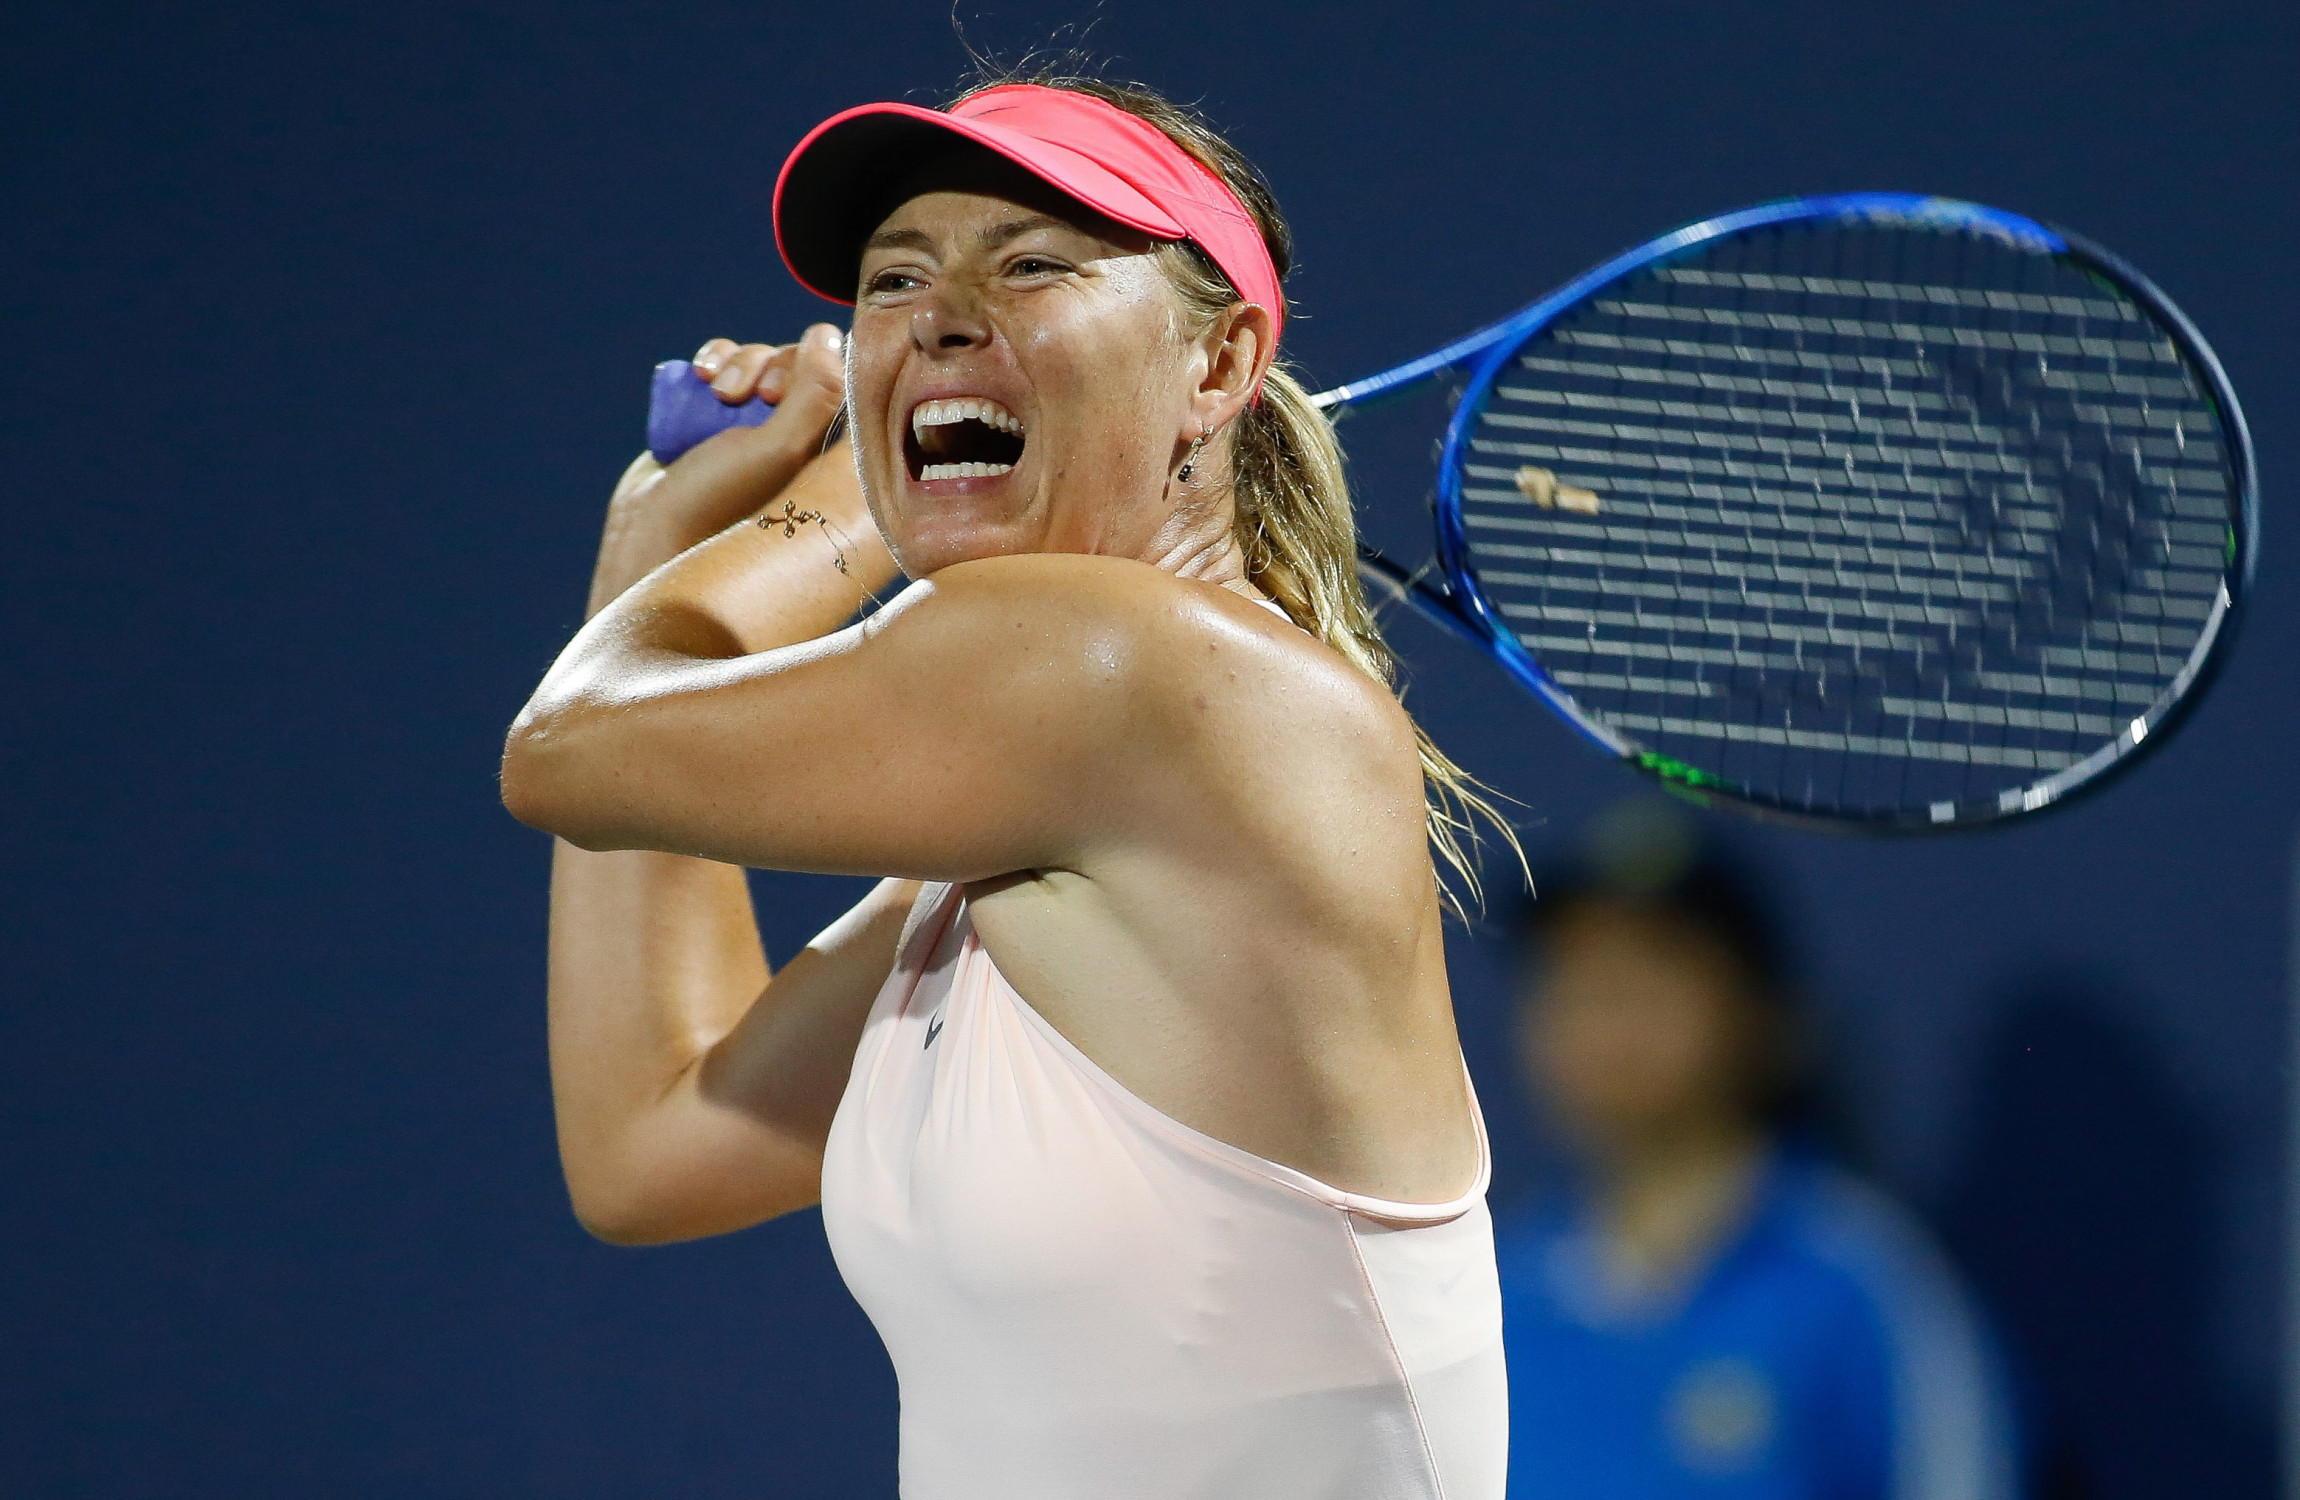 Sharapova Awarded US Open Wild Card